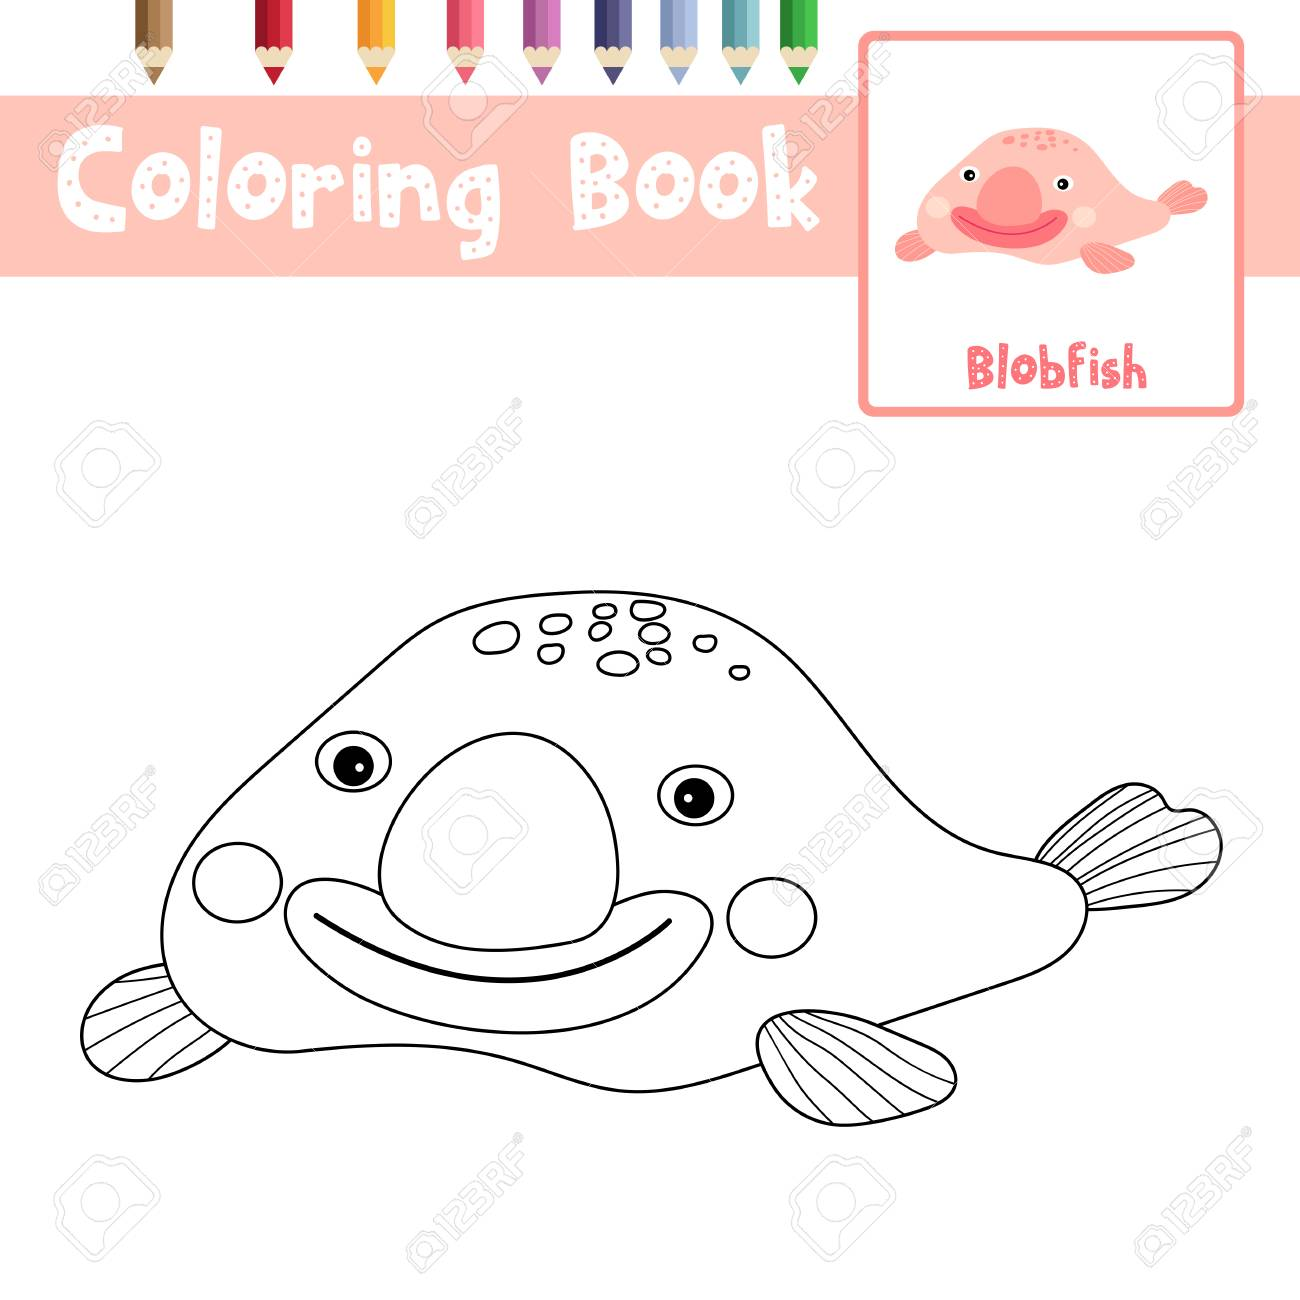 Coloring Page Of Happy Pink Blobfish Animals For Preschool Kids ...